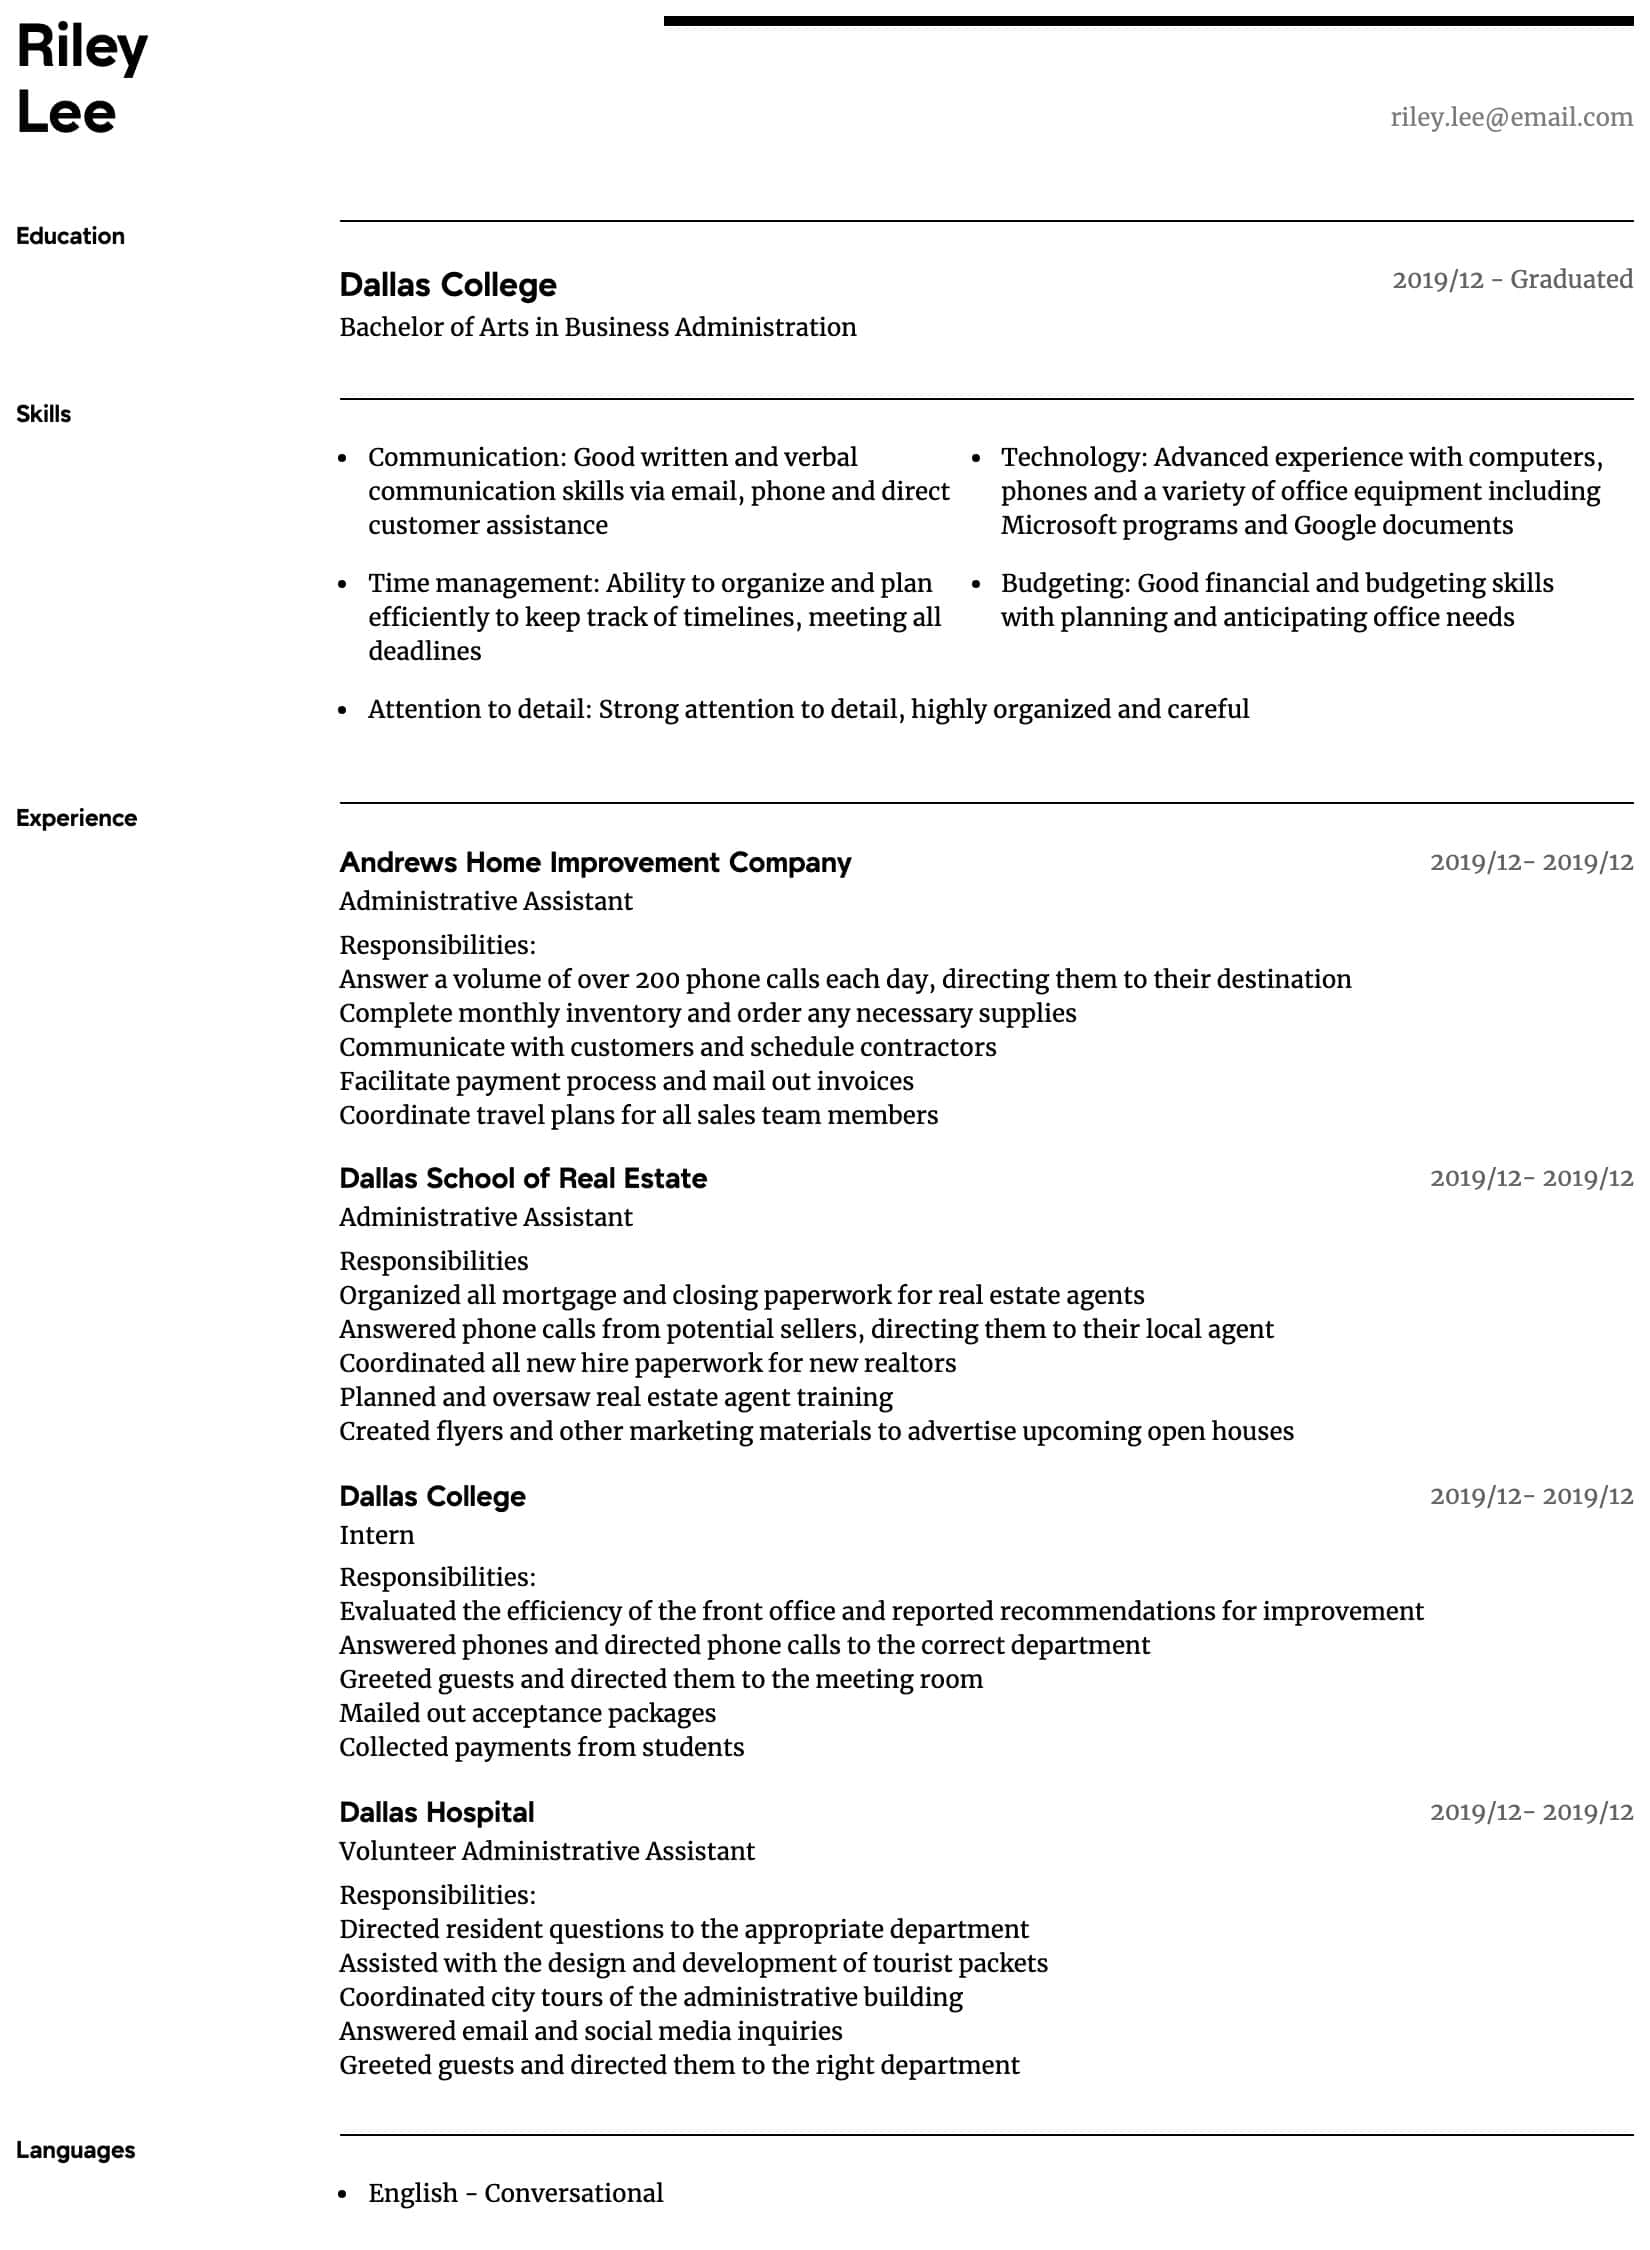 administrative assistant resume samples all experience levels summary examples Resume Administrative Assistant Resume Summary Examples